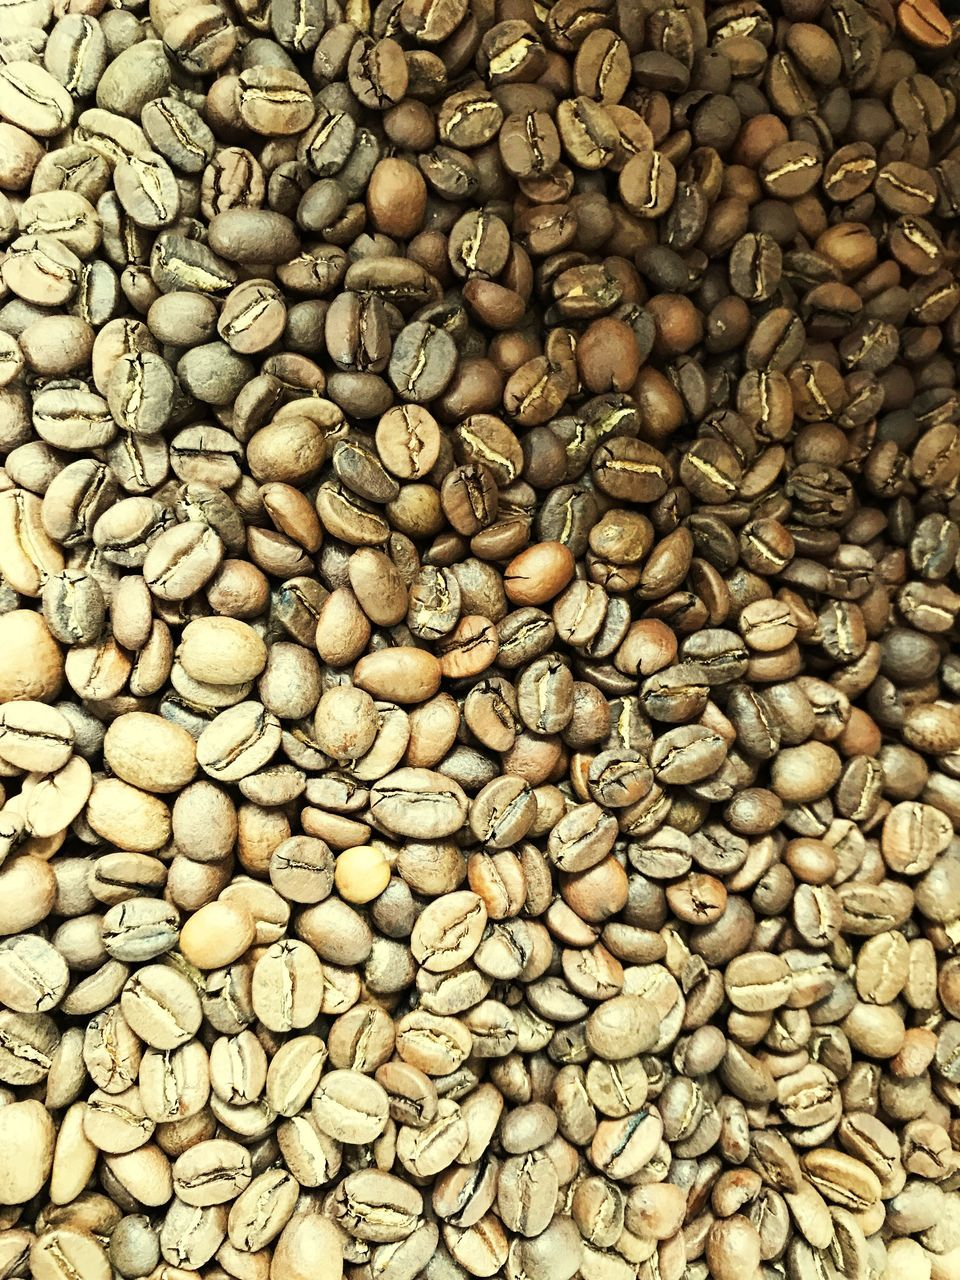 abundance, food and drink, large group of objects, roasted coffee bean, full frame, still life, coffee bean, backgrounds, no people, food, raw coffee bean, freshness, coffee - drink, brown, indoors, close-up, roasted, nature, day